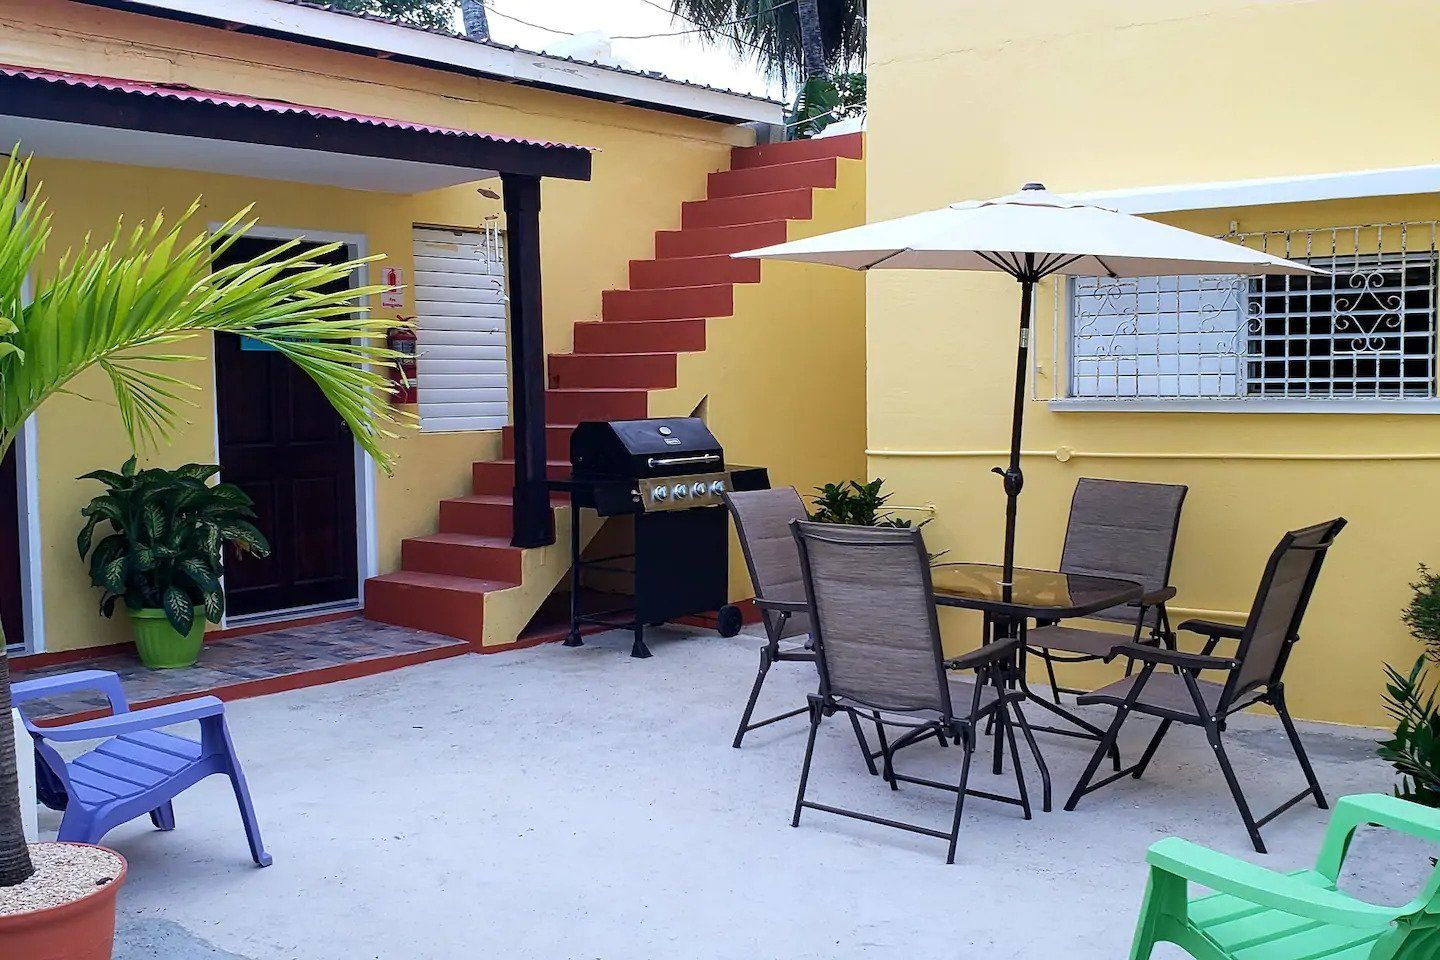 Sir Angel's Guesthouse (Airbnb)